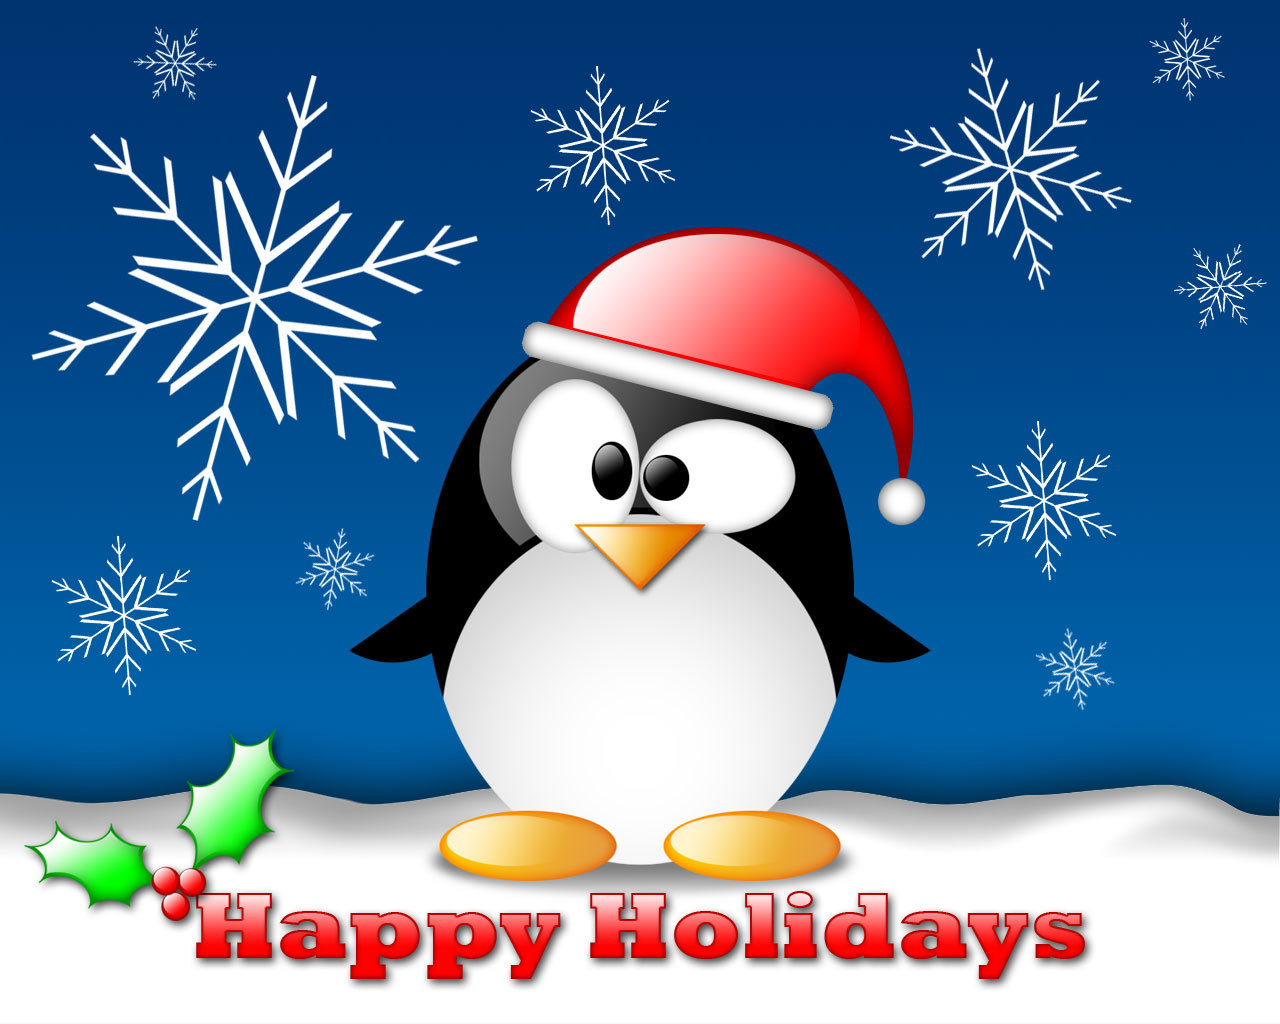 We here at The Financial Engineer want to wish all of our readers and their loved ones a Happy Holidays!